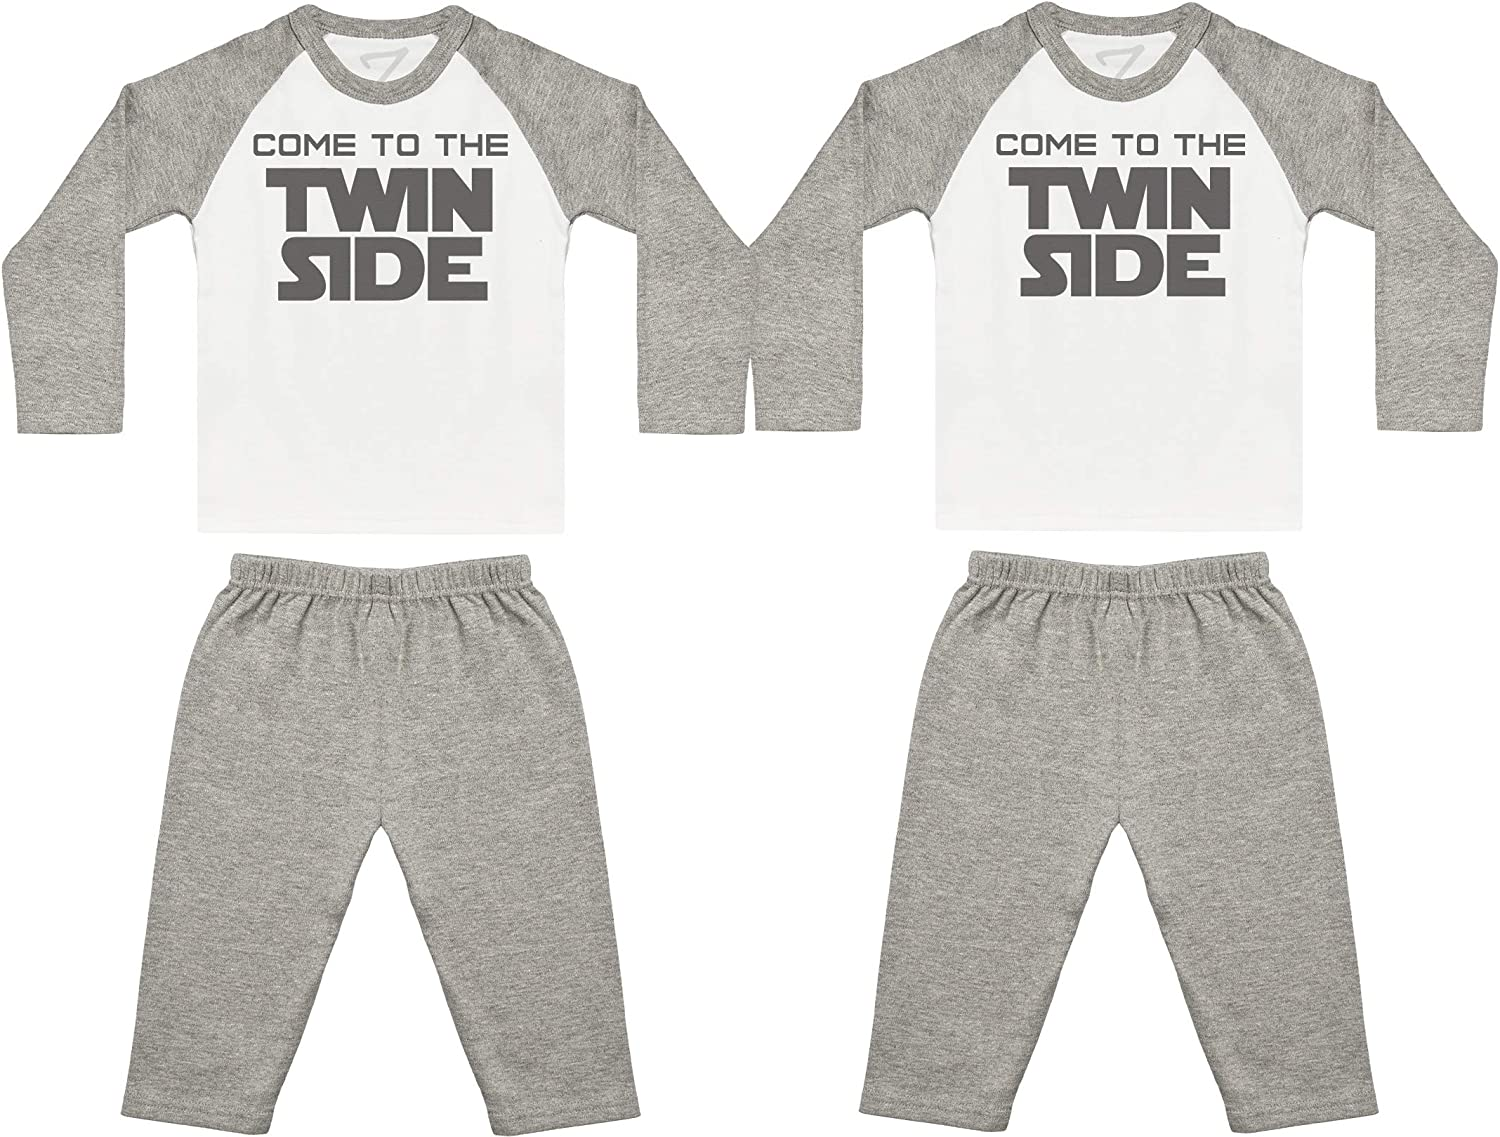 Baby Twins Nightwear Zarlivia Clothing Come to The Twin Side Baby Twin Pyjamas Baby Twins Gift